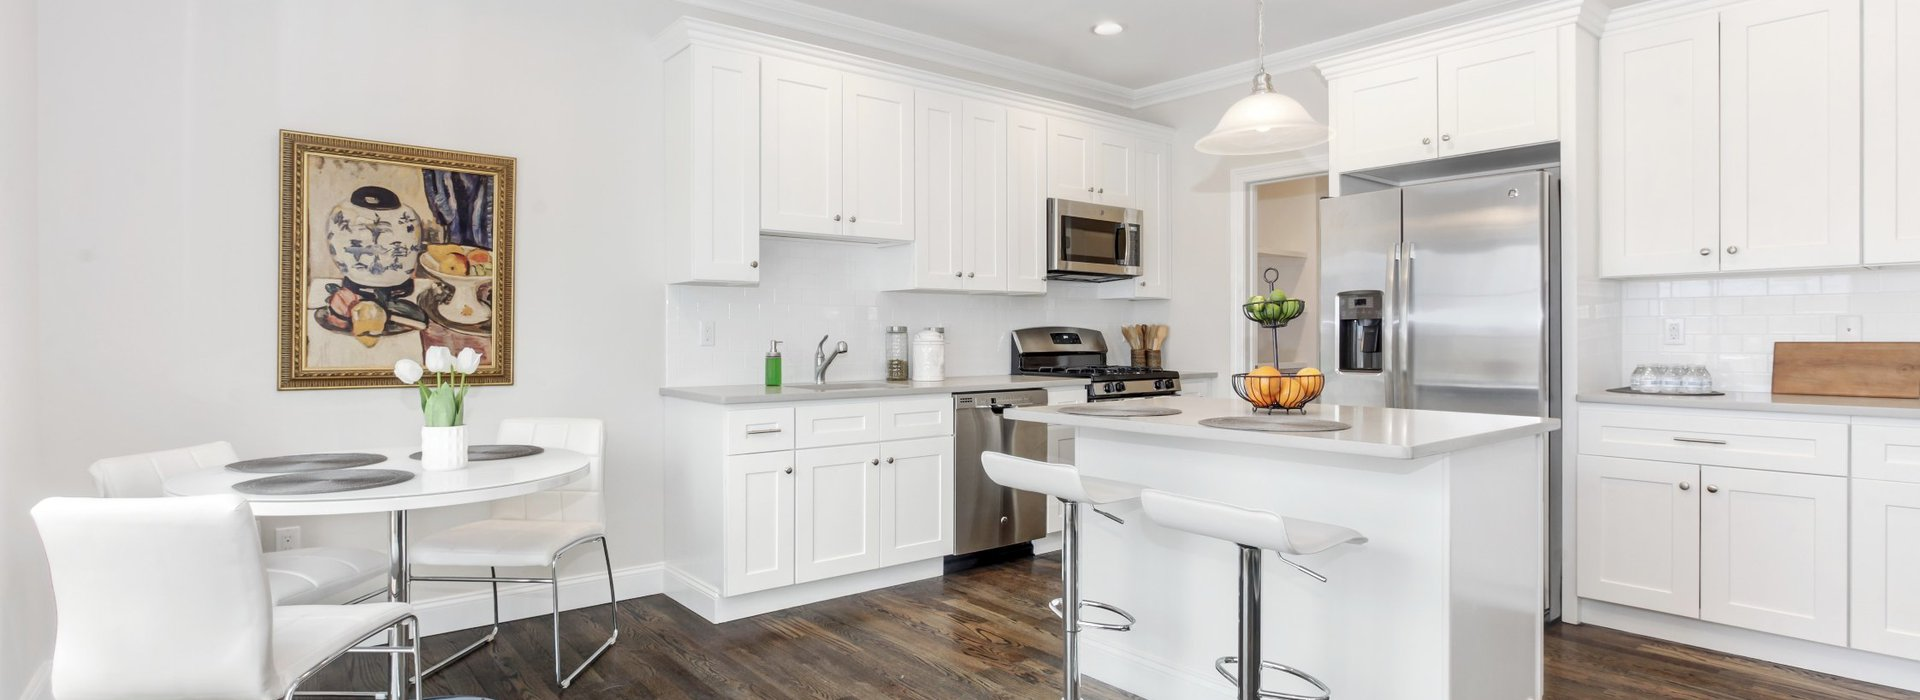 view of townhome kitchen with white marble appliances